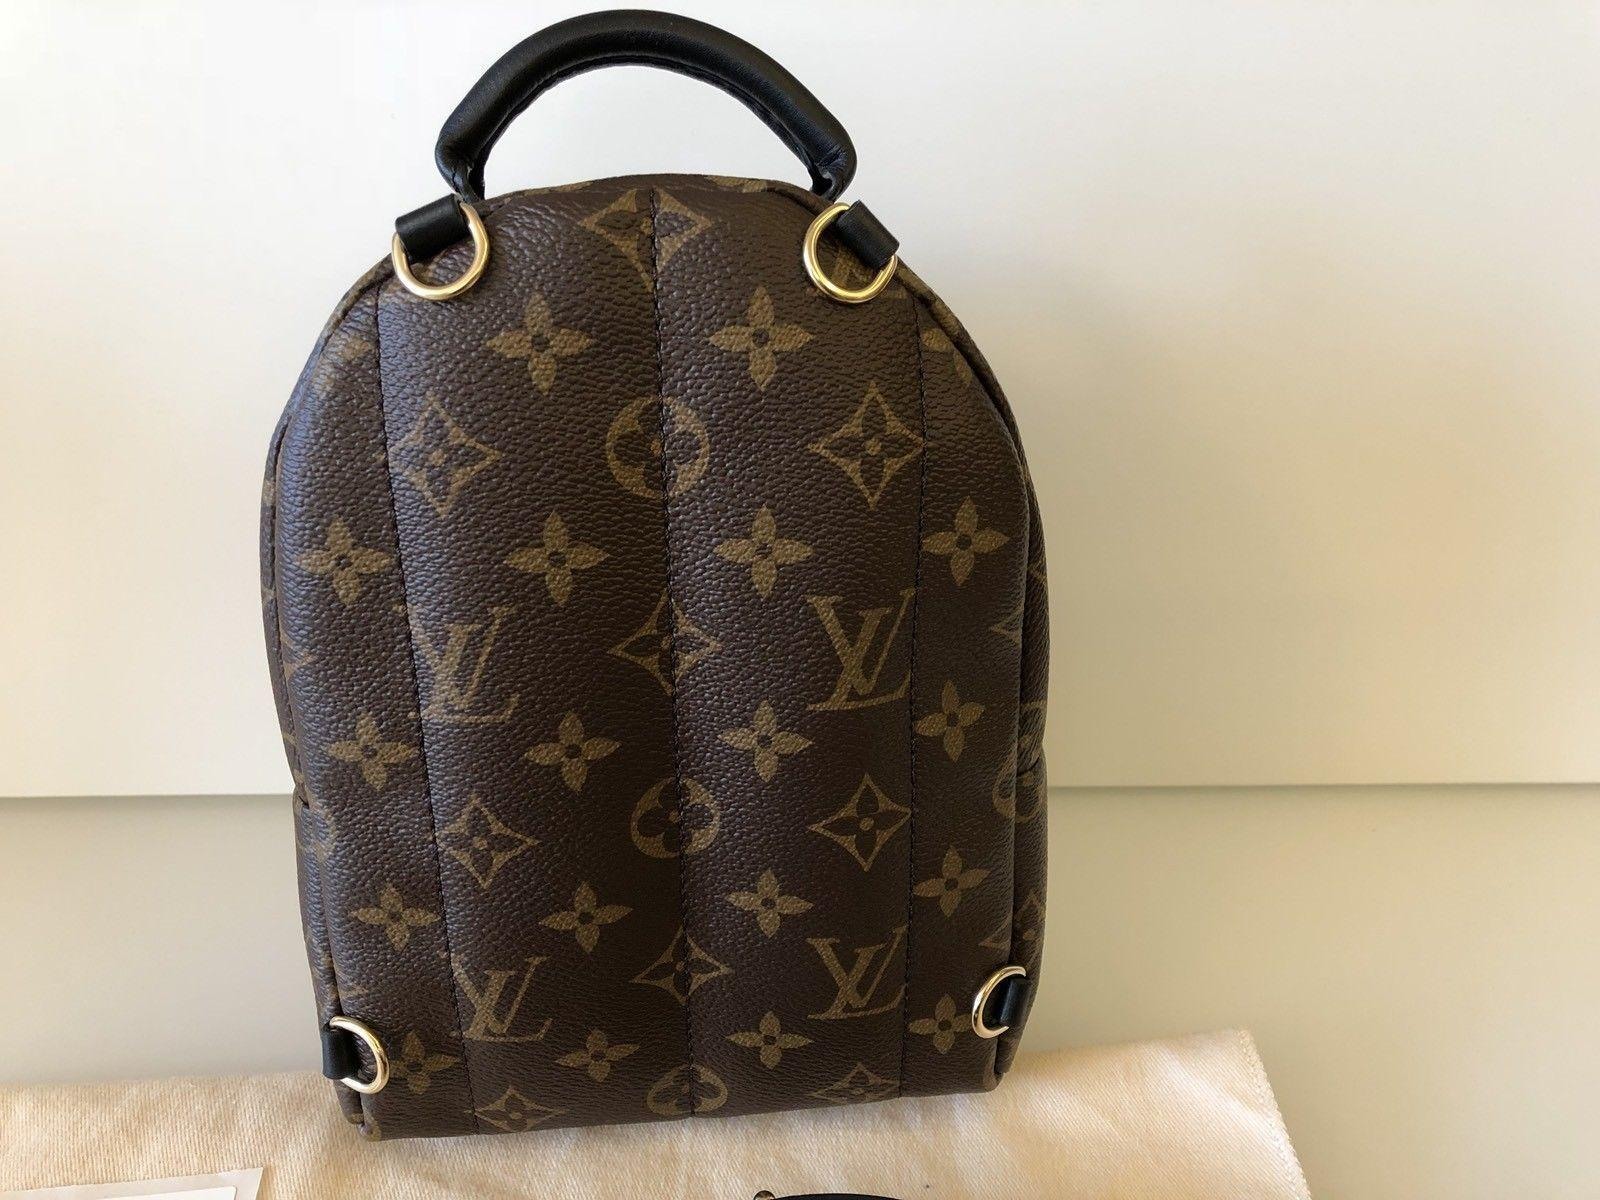 77cc89d0a62 Louis Vuitton Palm Springs Mini Backpack Monogram LV backpacks ...